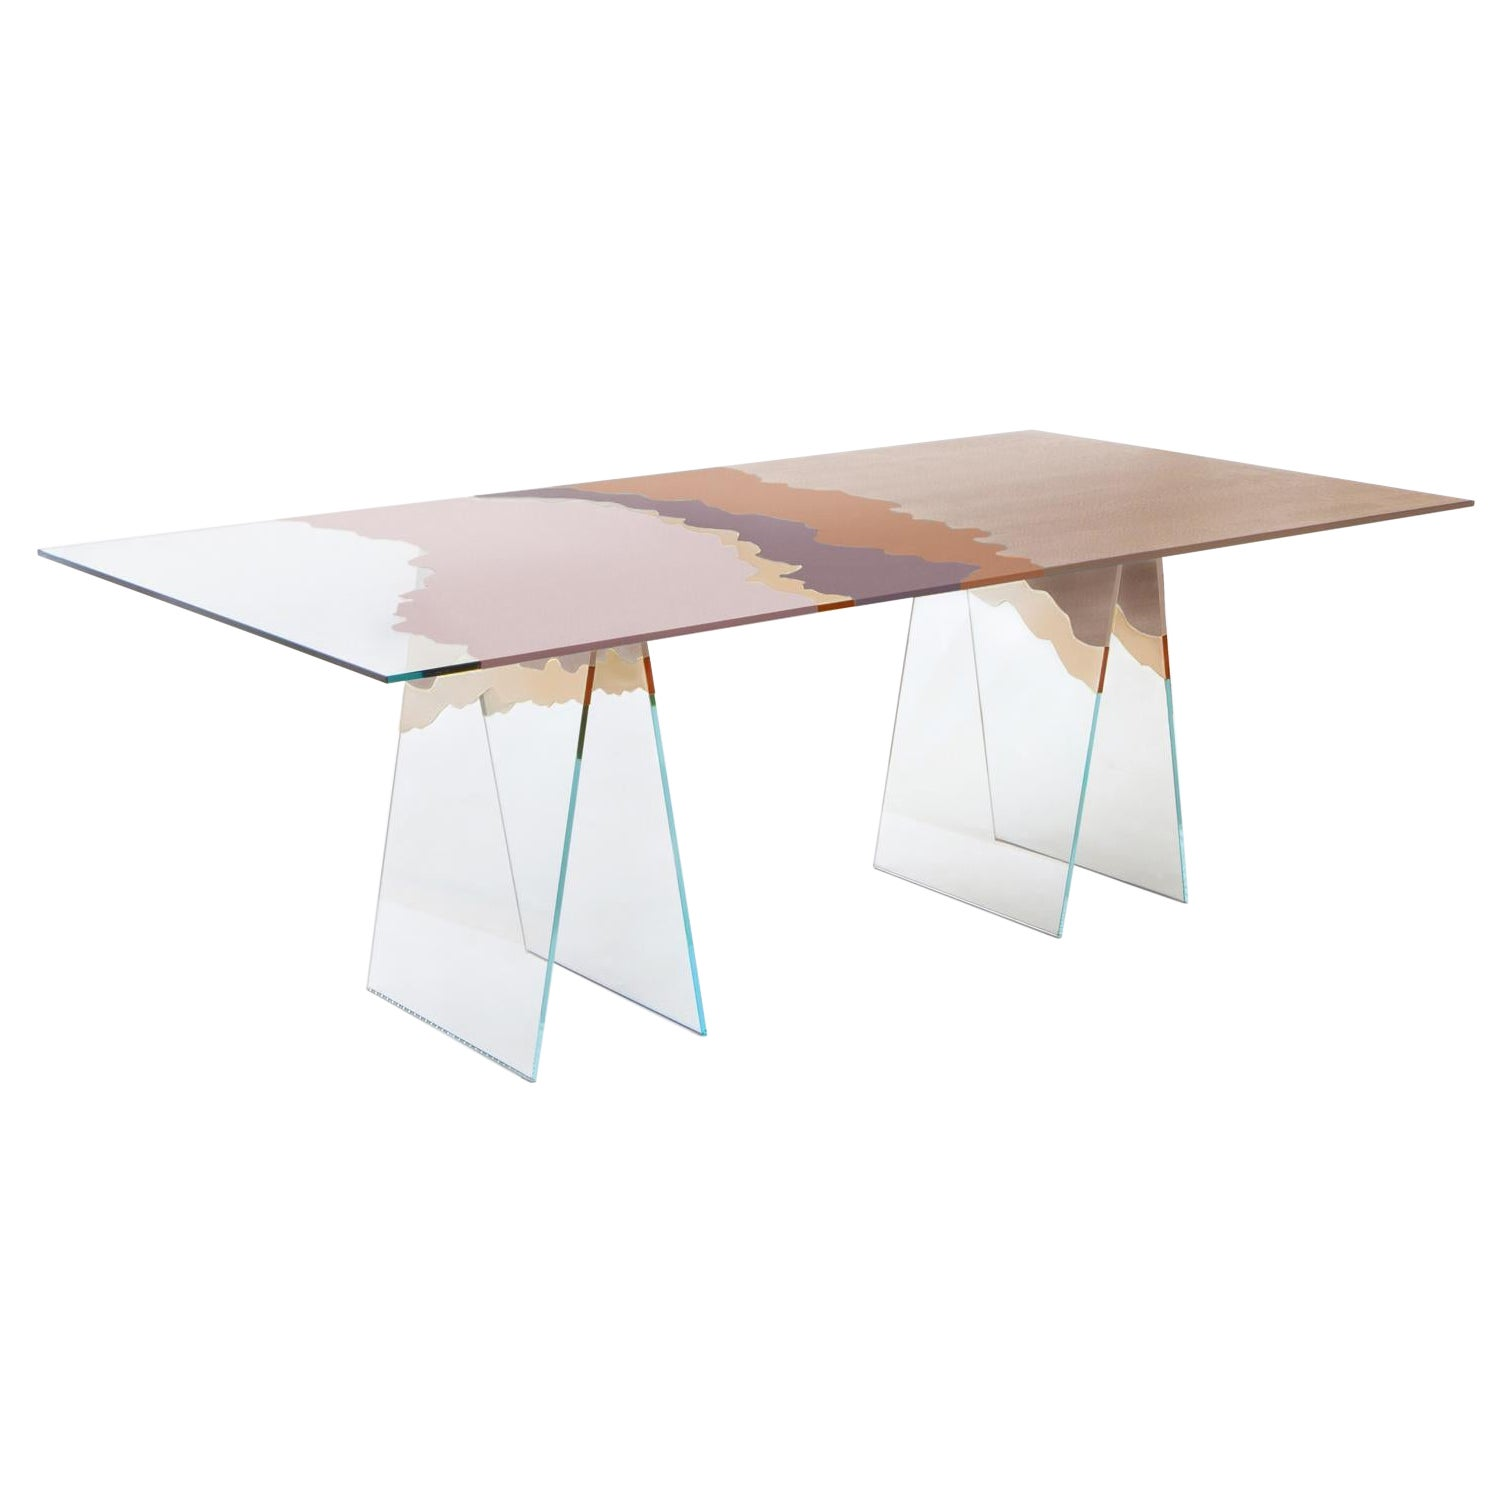 21st Century Table de Milàn Table in Ultra-White Glass and Dawn Color Laminate